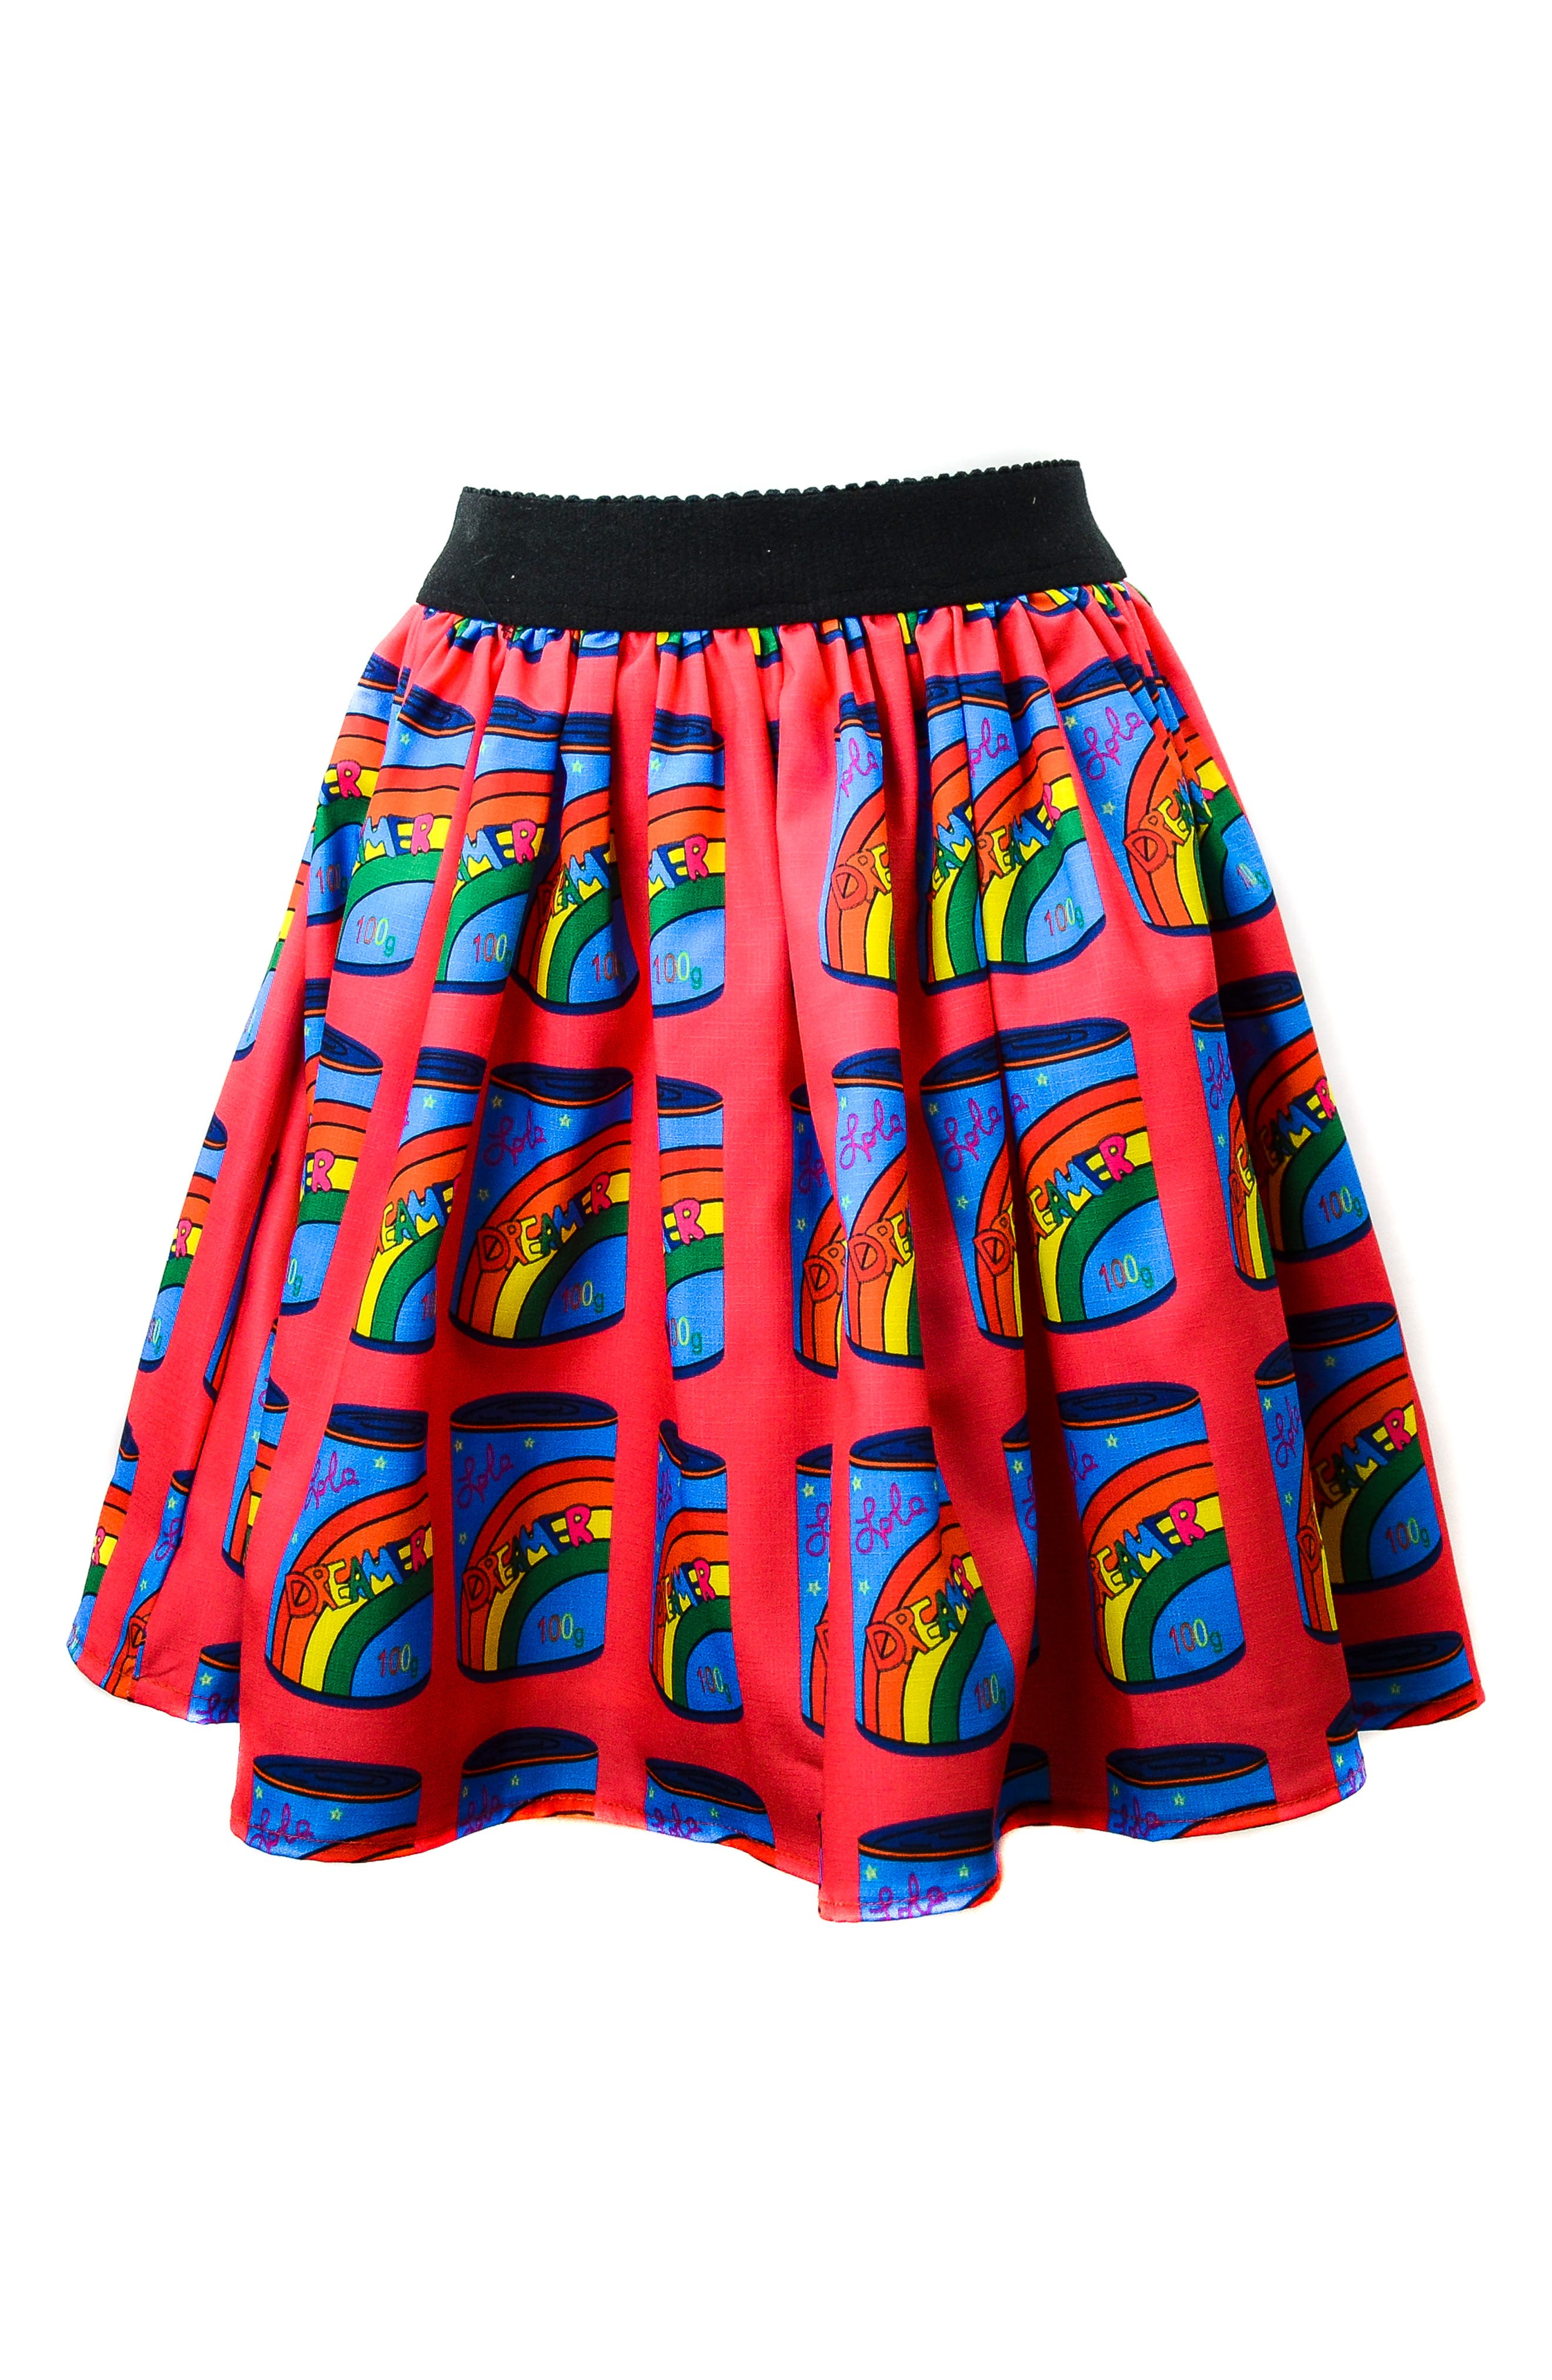 LOLA & THE BOYS, Dreamers Can Tutu Skirt, Main thumbnail 1, color, RED